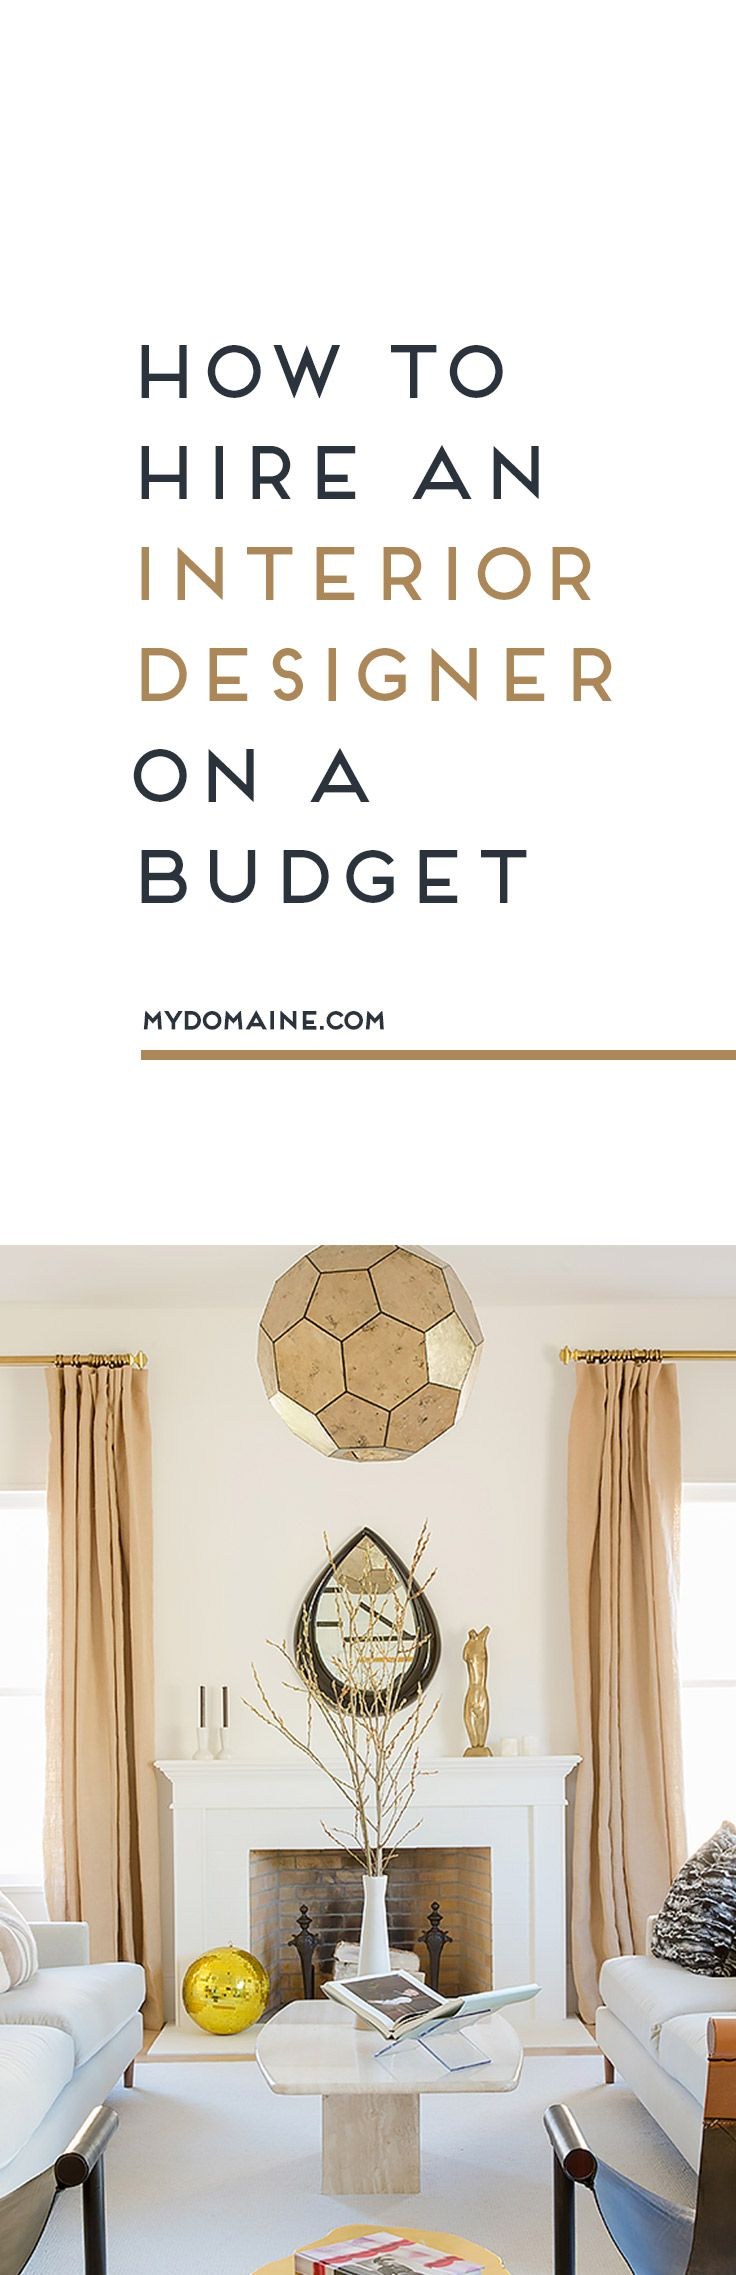 How to hire an interior designer on a budget startups designers and interiors for Hiring an interior designer on a budget